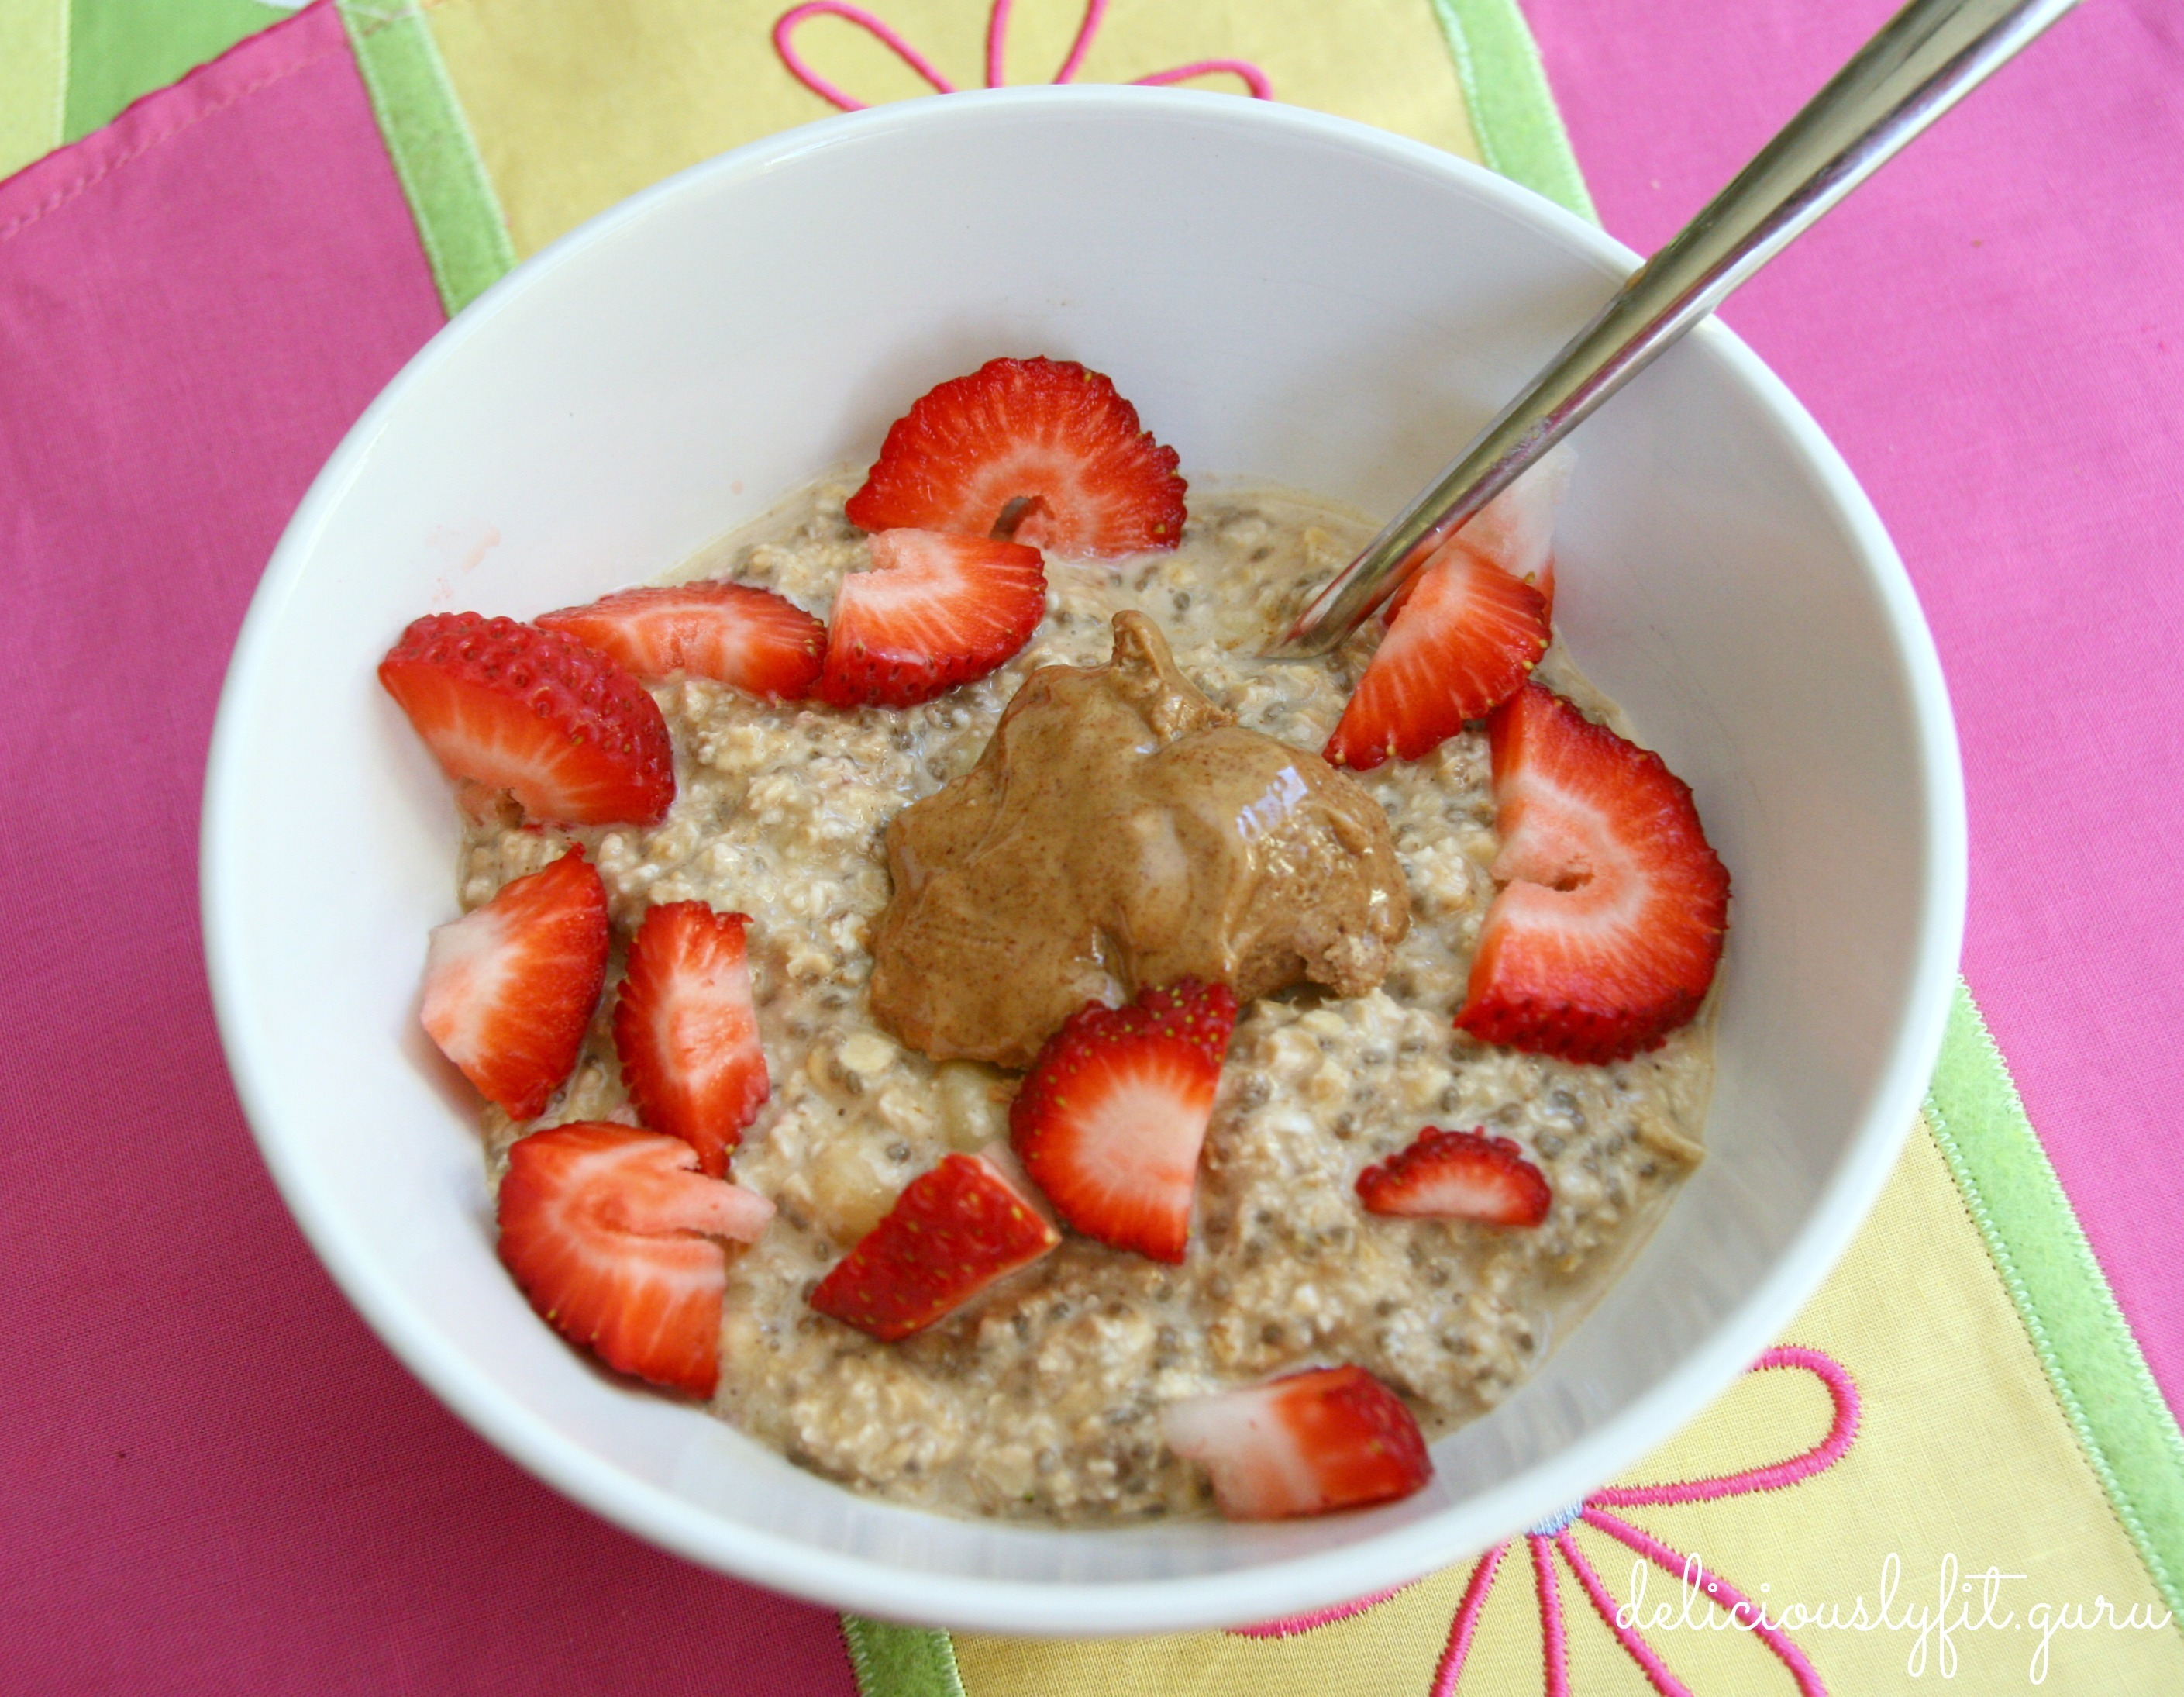 5 Quick and Easy Healthy Breakfast Ideas (To make mornings less stressful!)